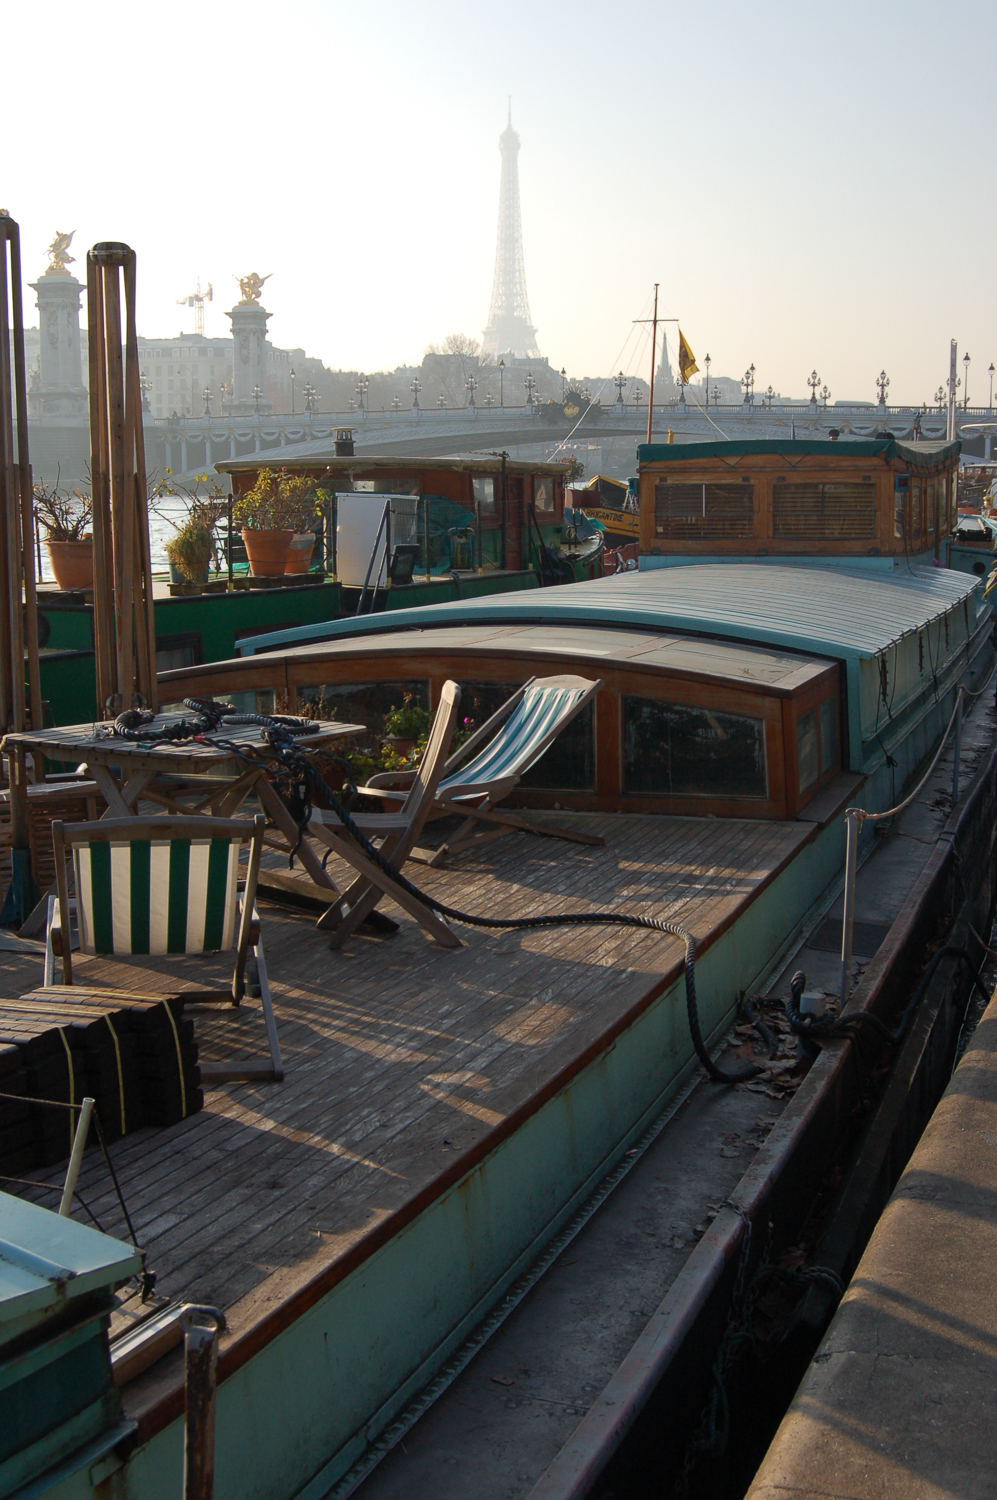 Houseboat, River Seine, Paris